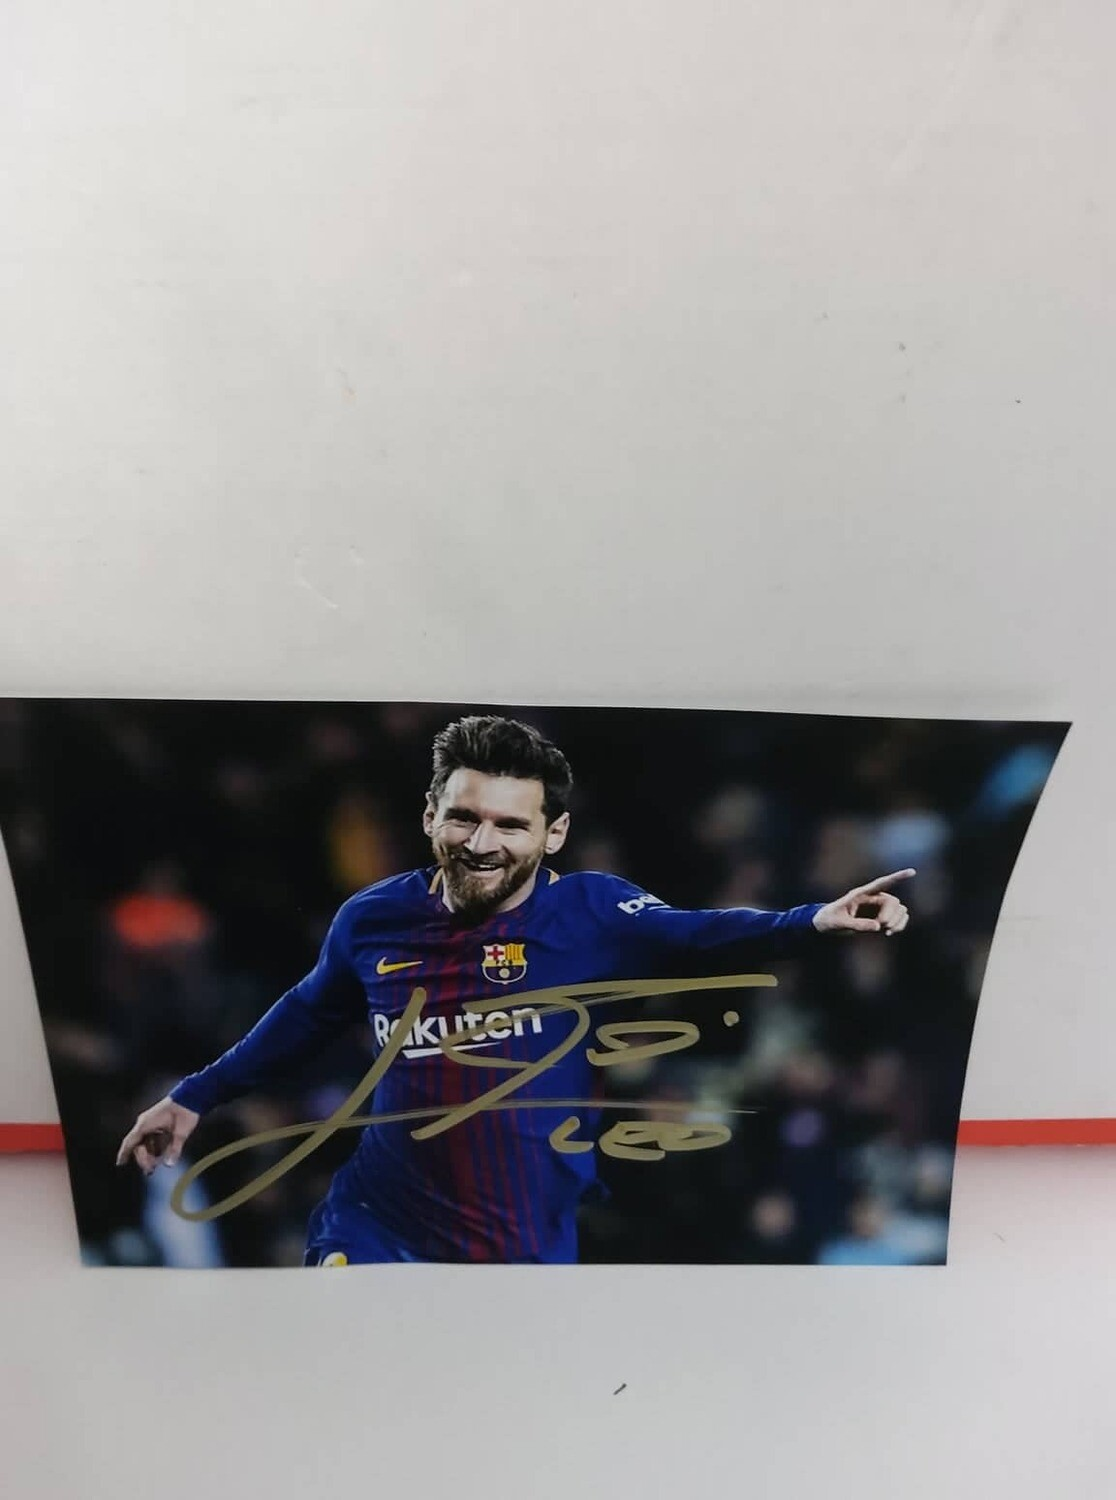 FOTO LIONEL MESSI  Autografata Signed + COA Photo MESSI Autografato Signed